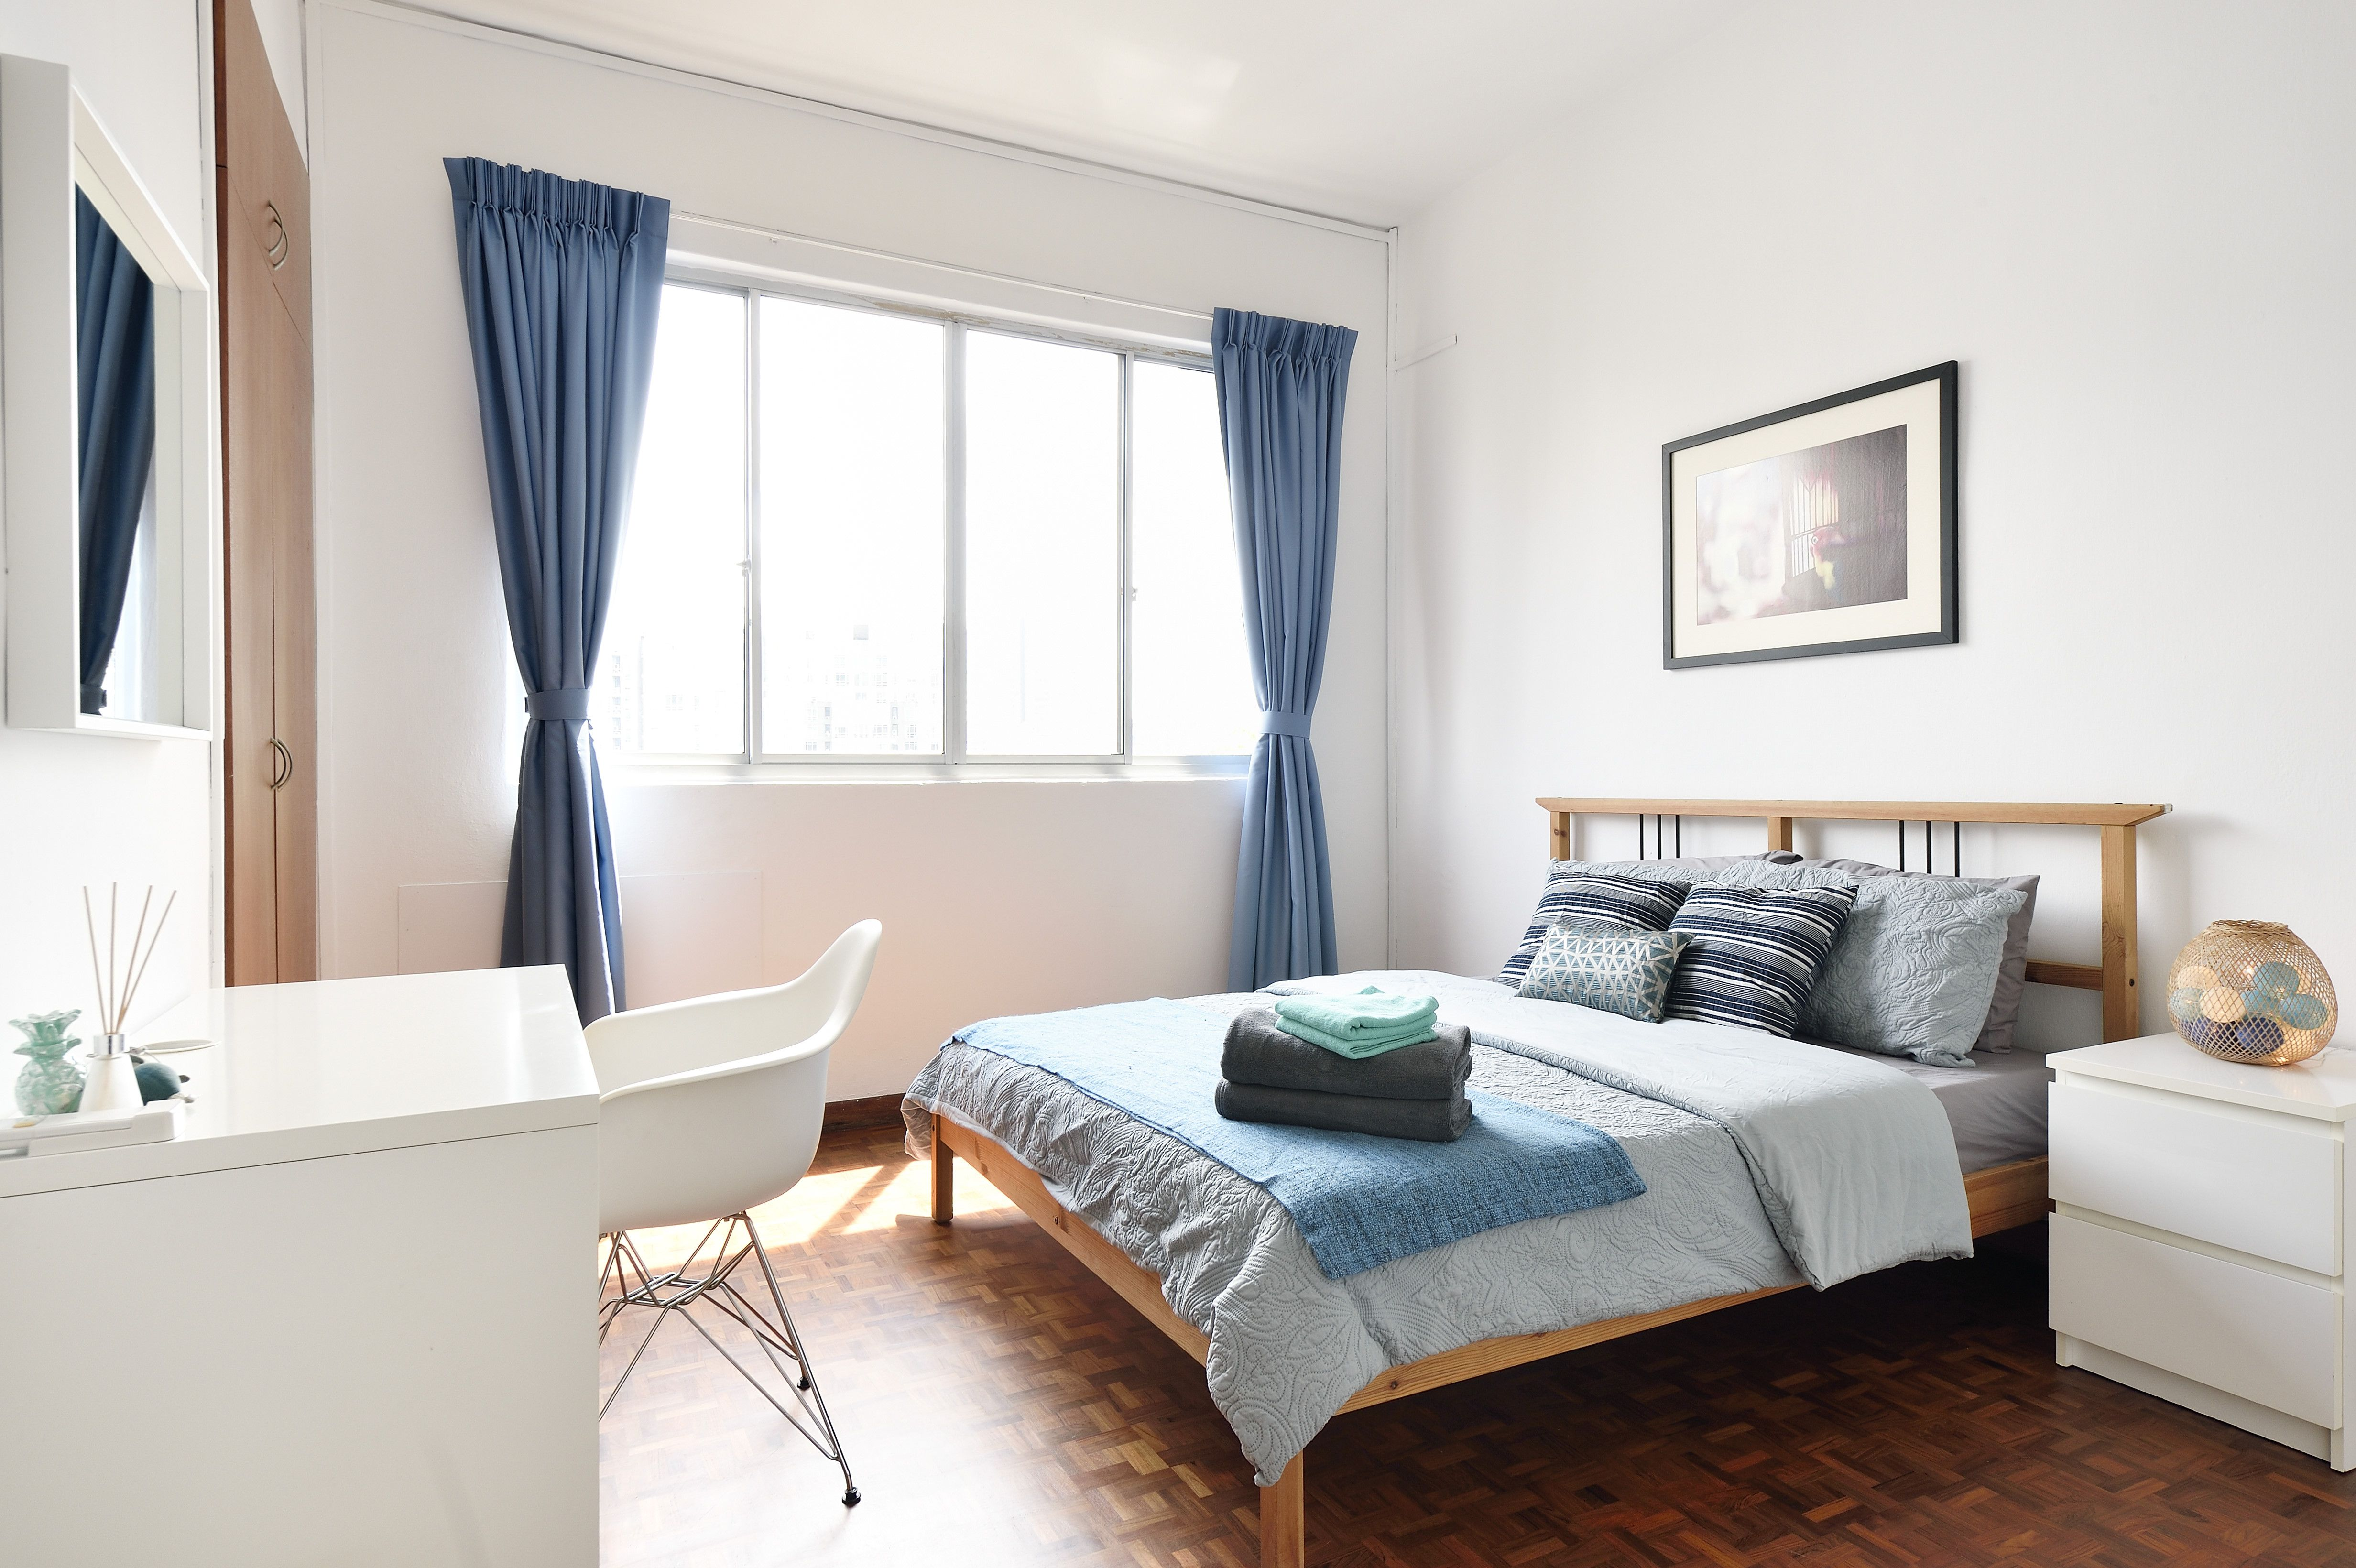 19 small bedroom ideas to create more space in your tiny room